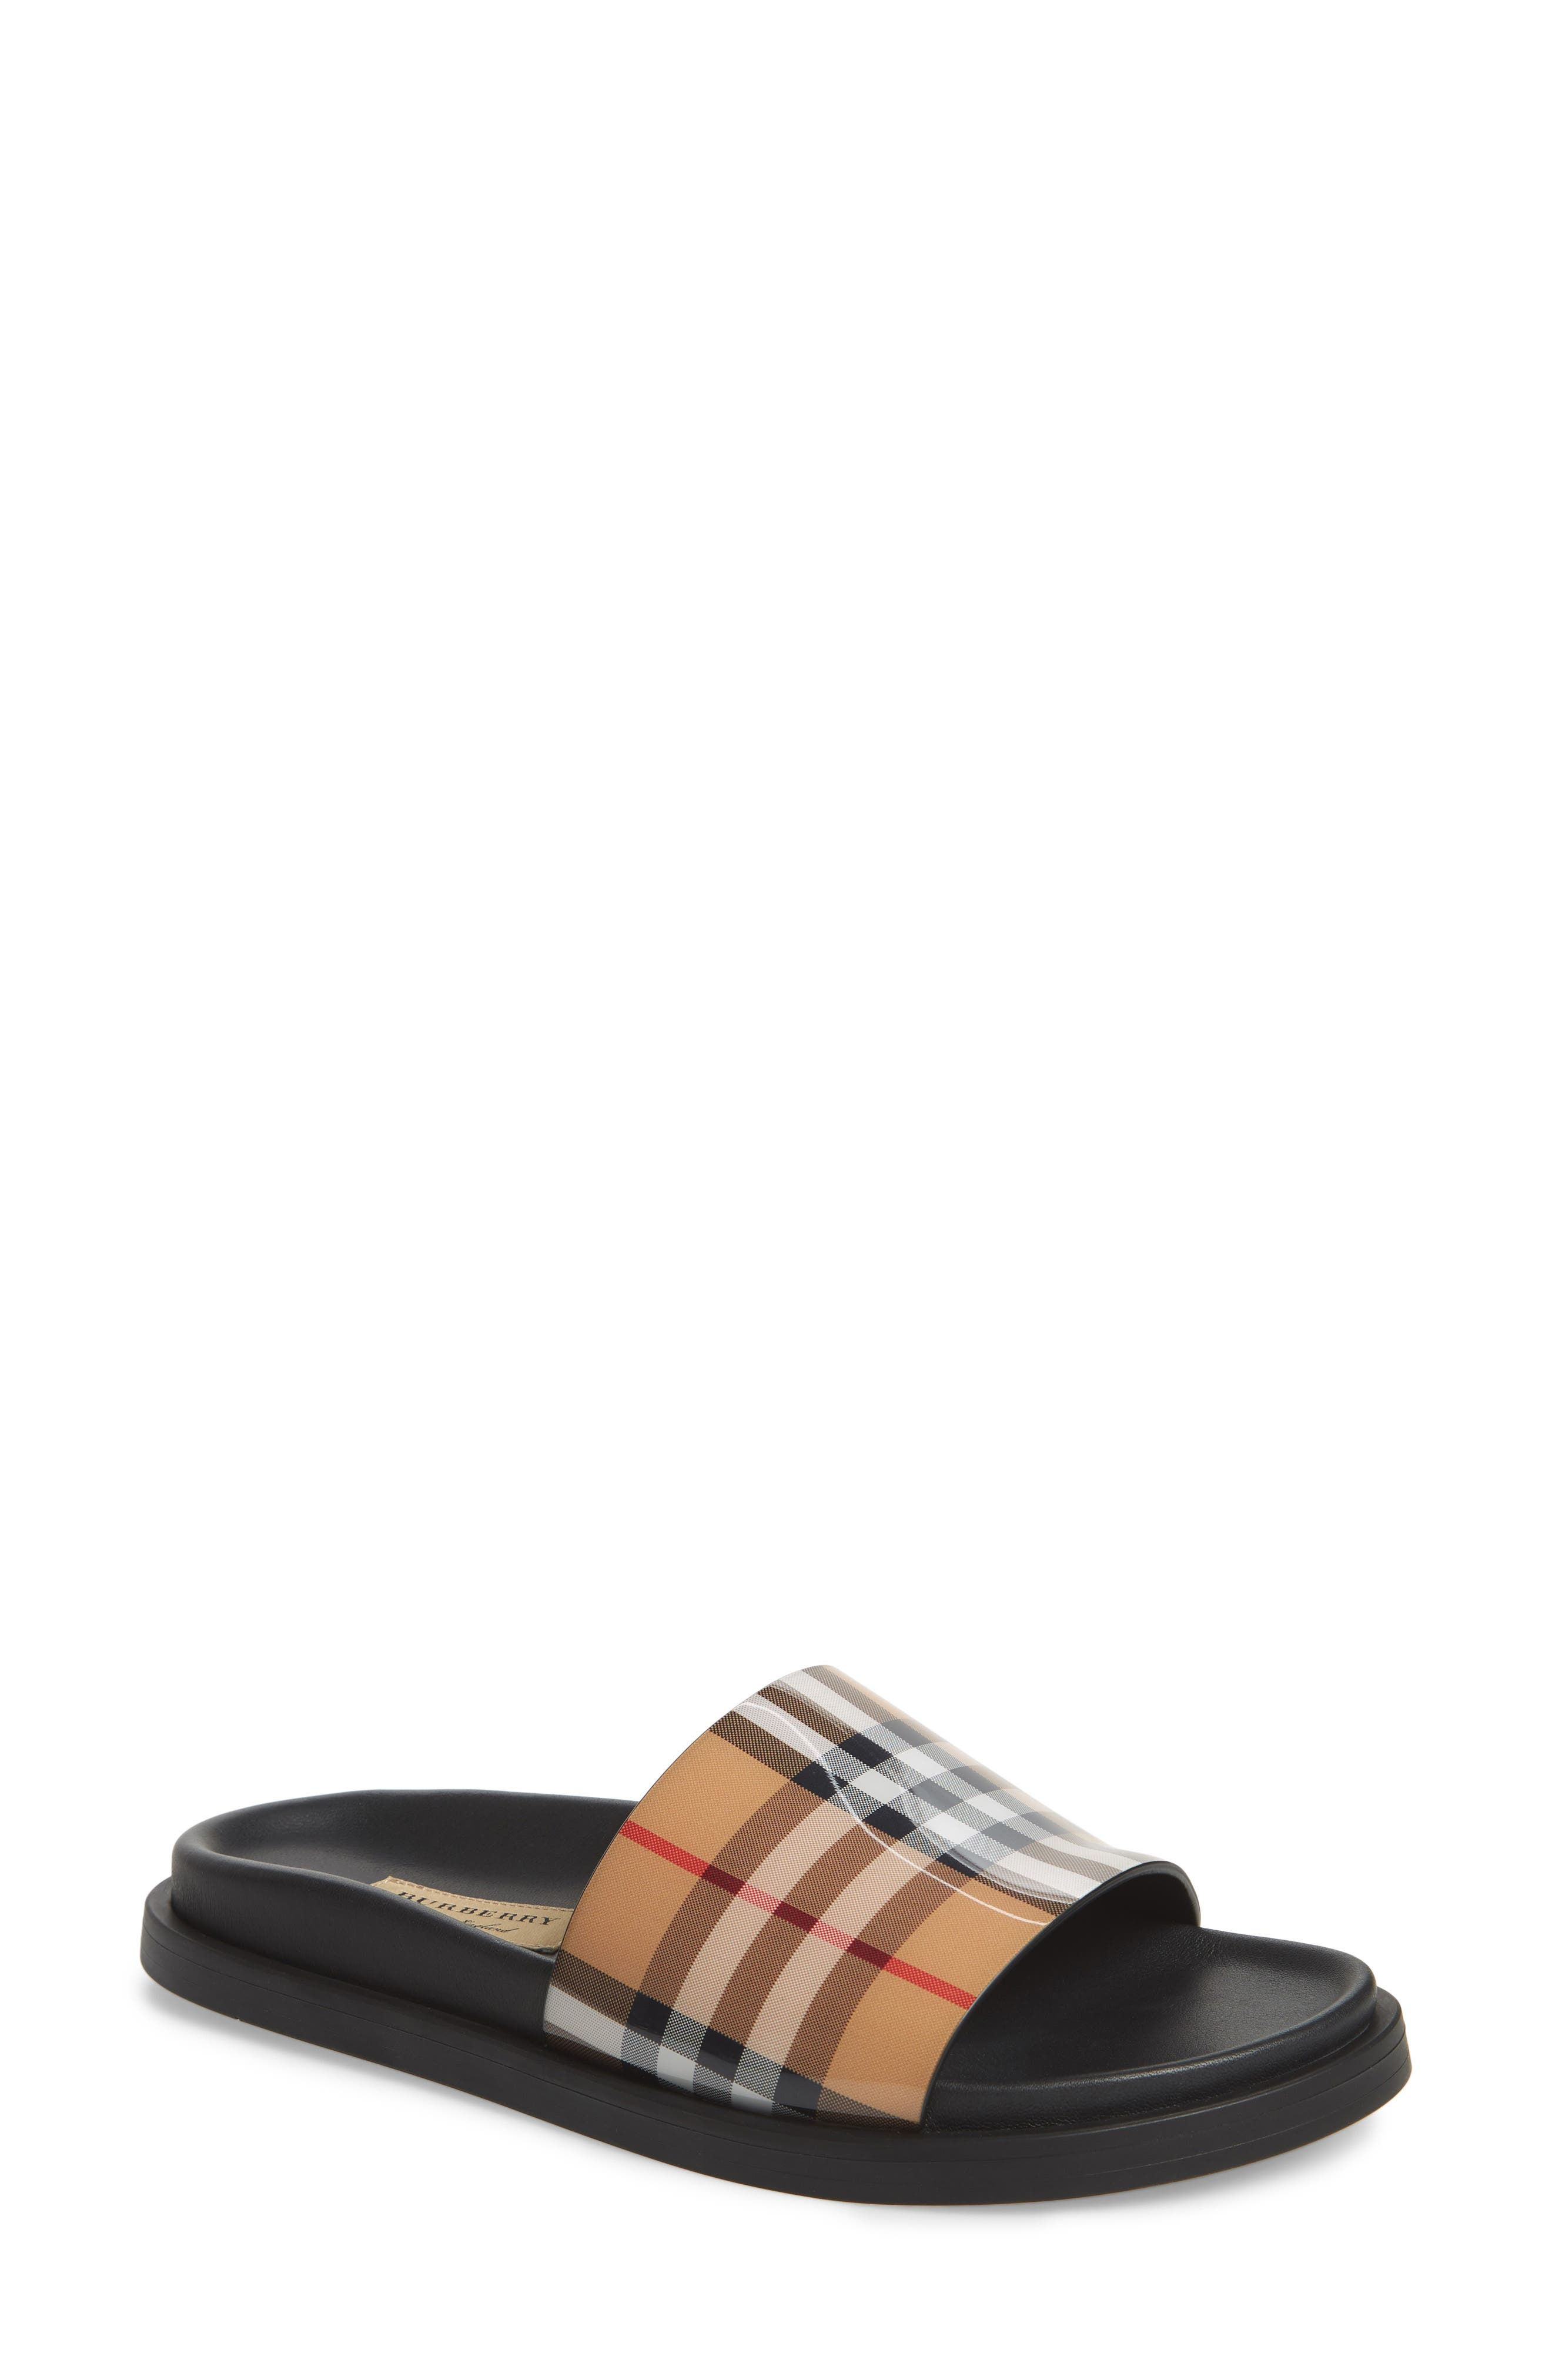 BURBERRY Vintage Check Slide Sandal, Main, color, 250